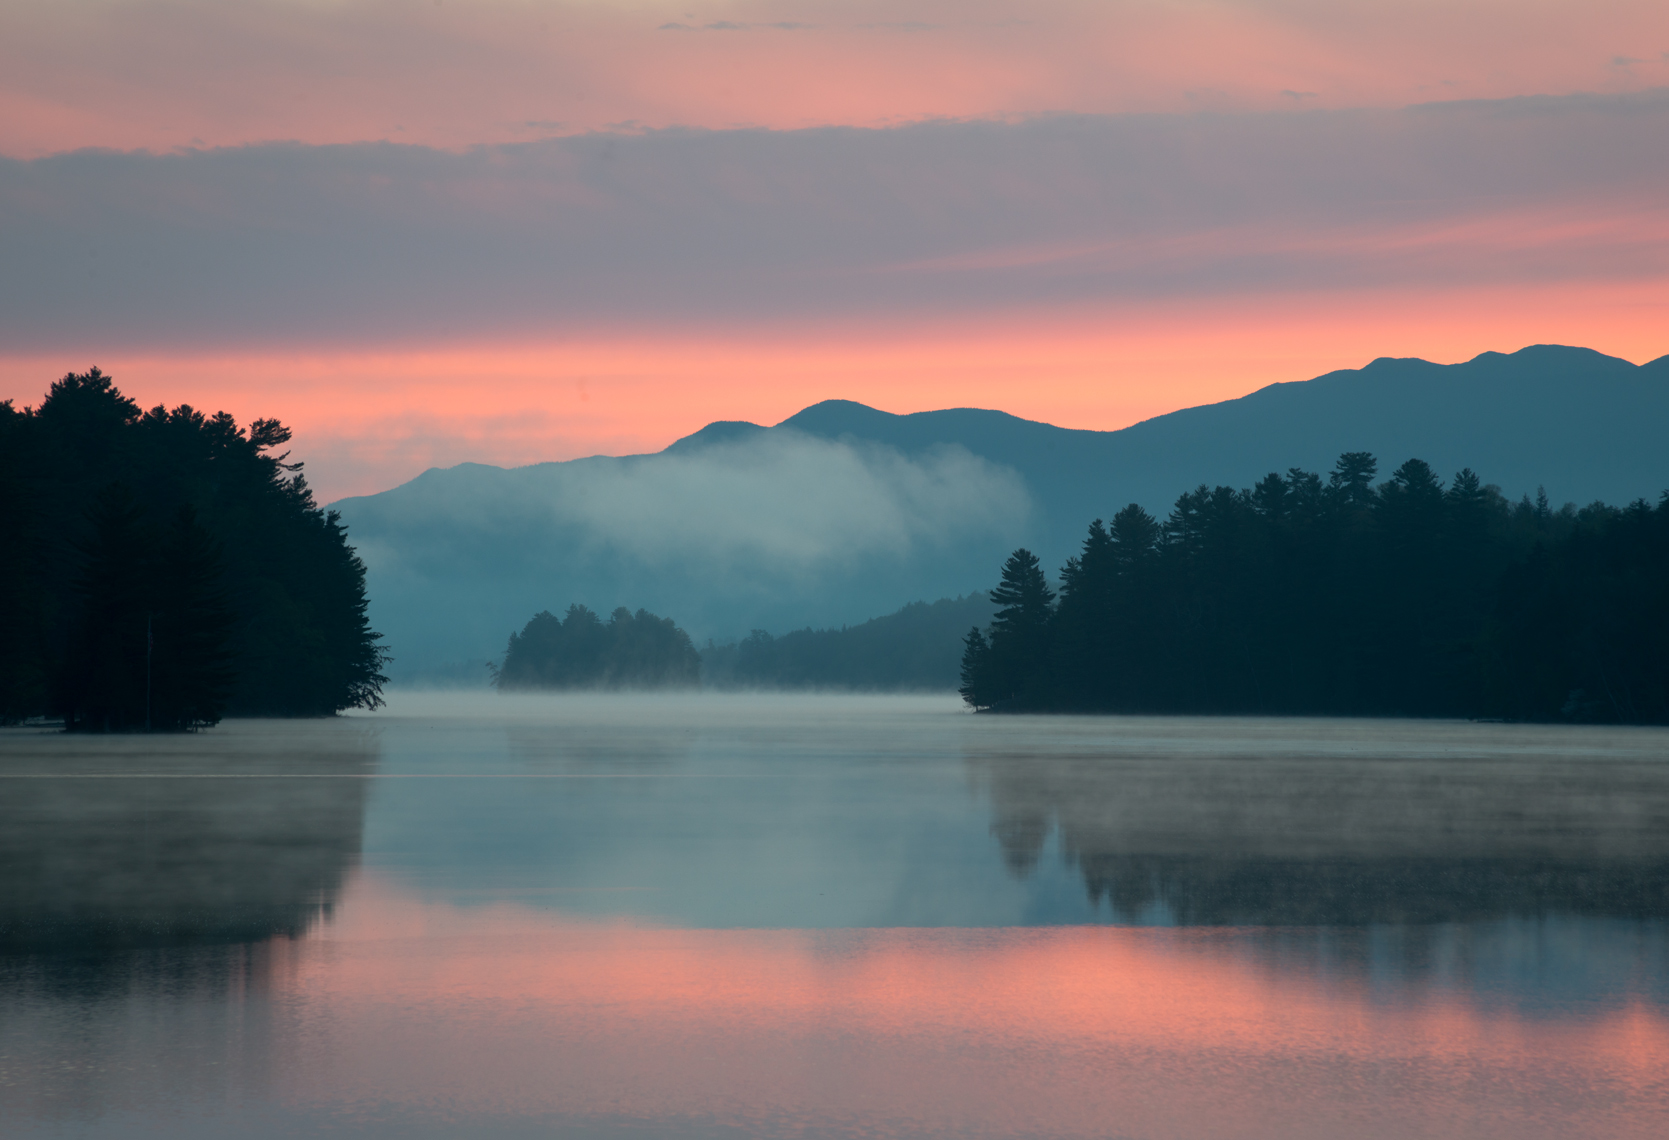 Dawn on Long Lake, Adirondack Mountains, New York State